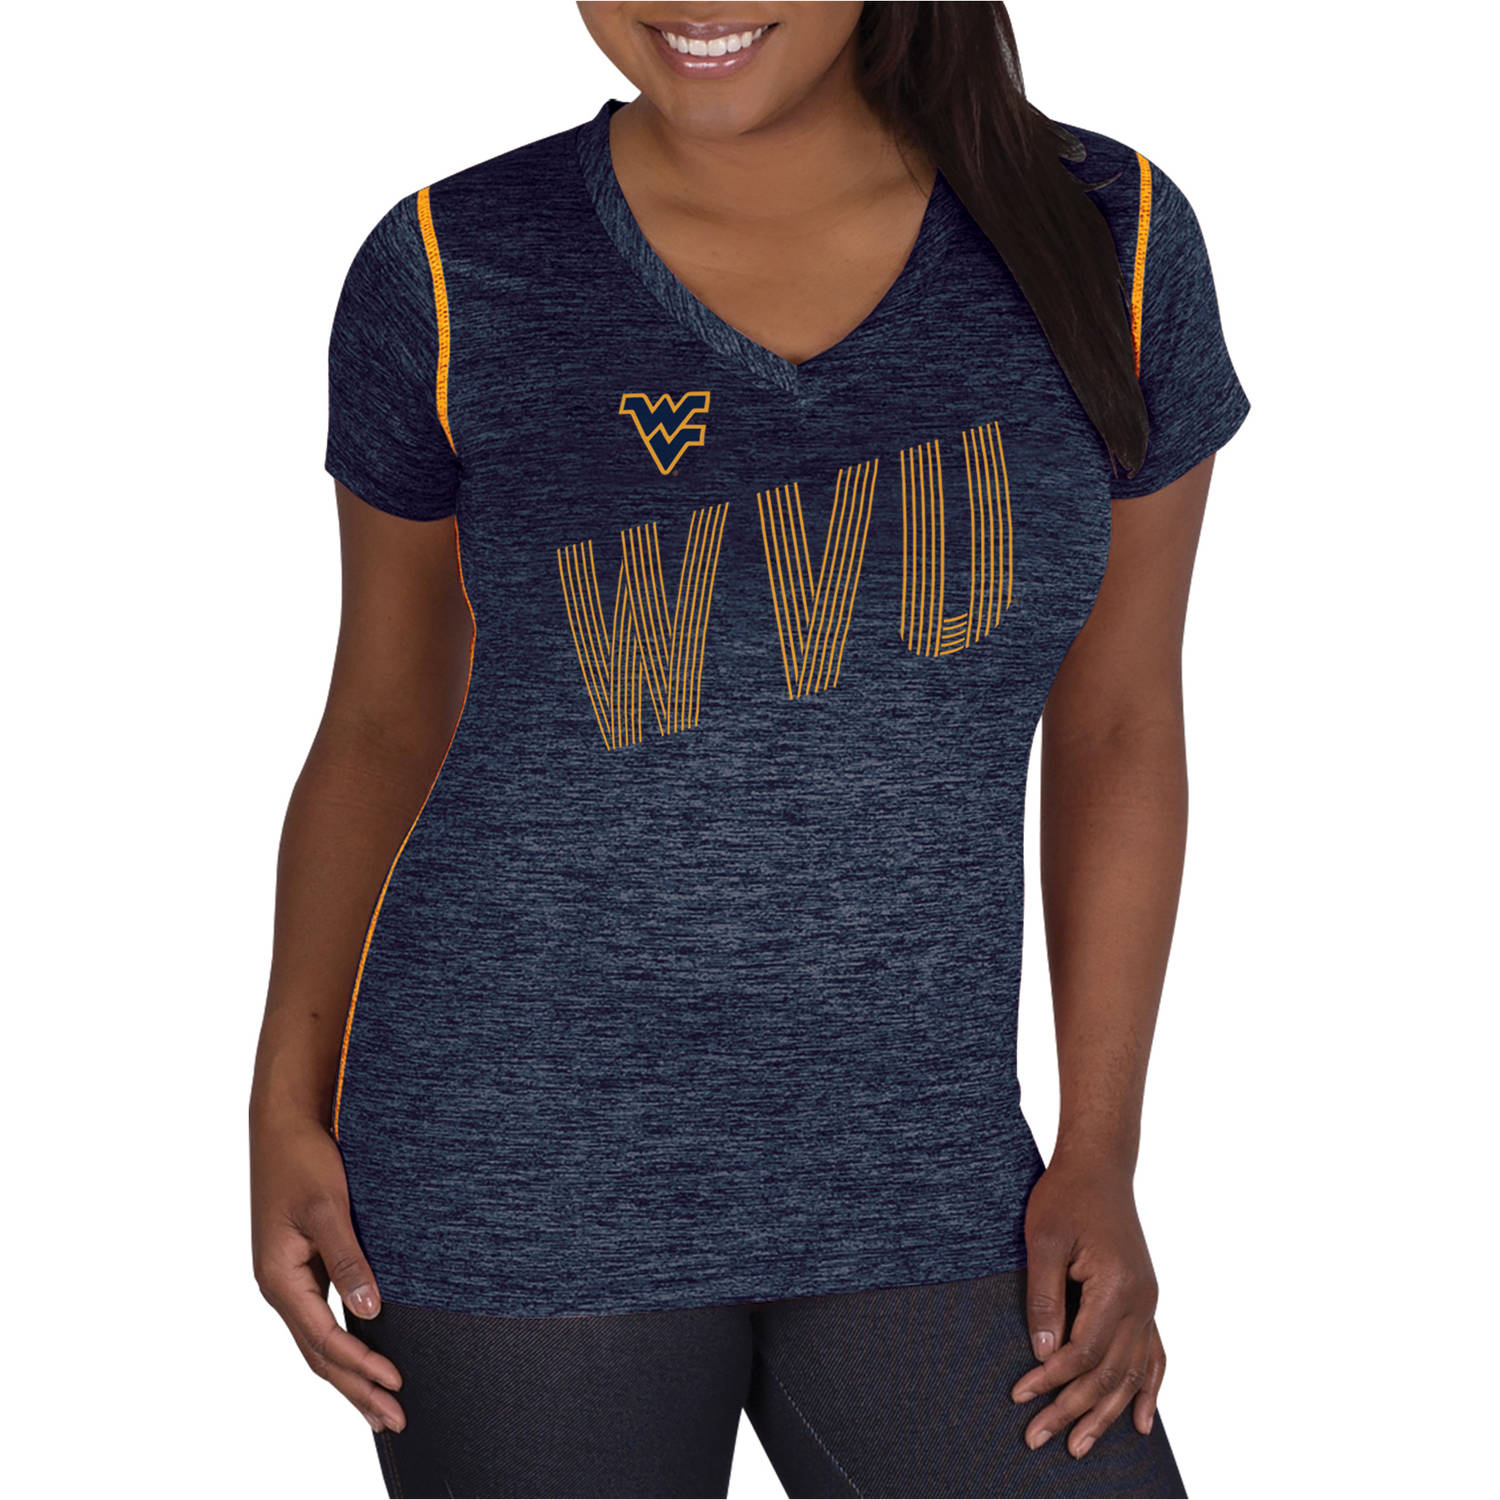 NCAA West Virginia Mountaineers Ladies Classic-Fit Synthetic V-Neck Tee